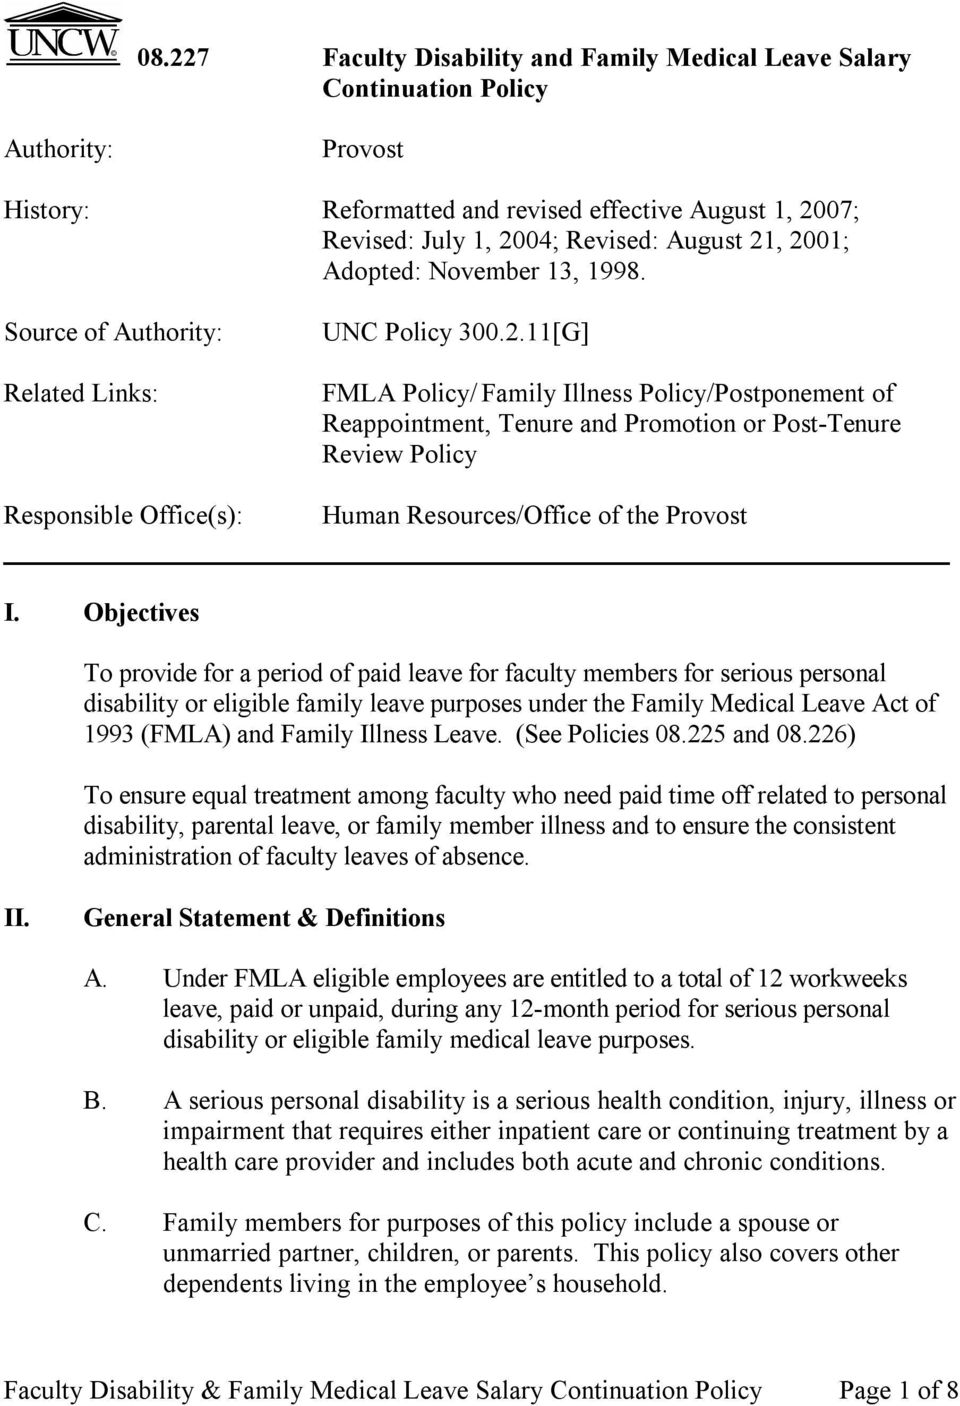 Objectives To provide for a period of paid leave for faculty members for serious personal disability or eligible family leave purposes under the Family Medical Leave Act of 1993 (FMLA) and Family